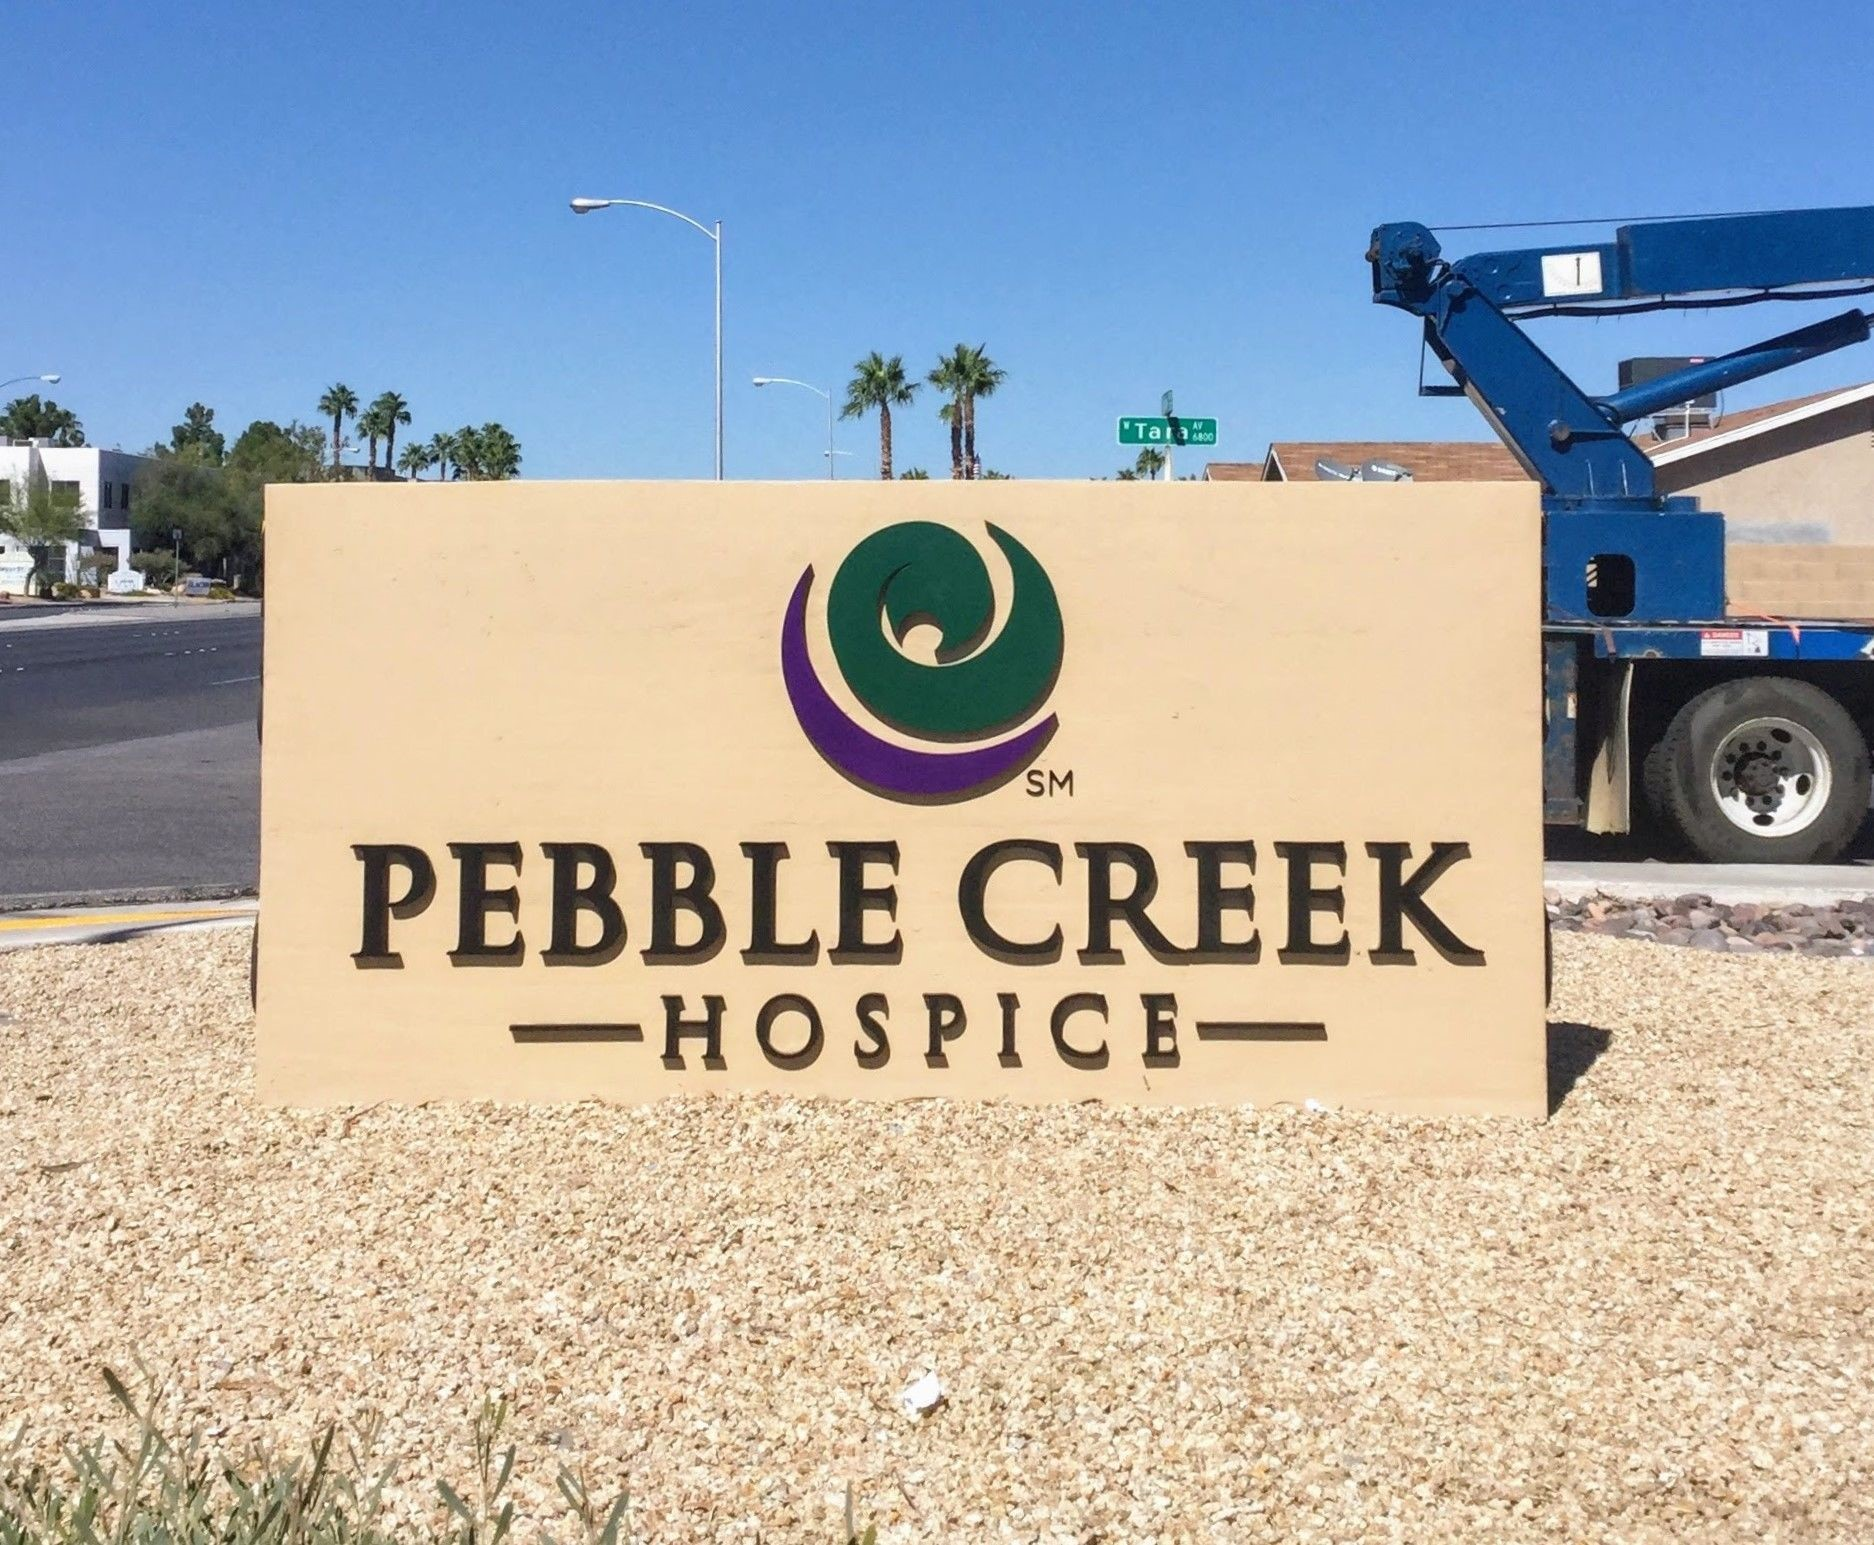 Exterior & Outdoor Signage | Monument Signs | Hospital & Healthcare Signs | Las Vegas